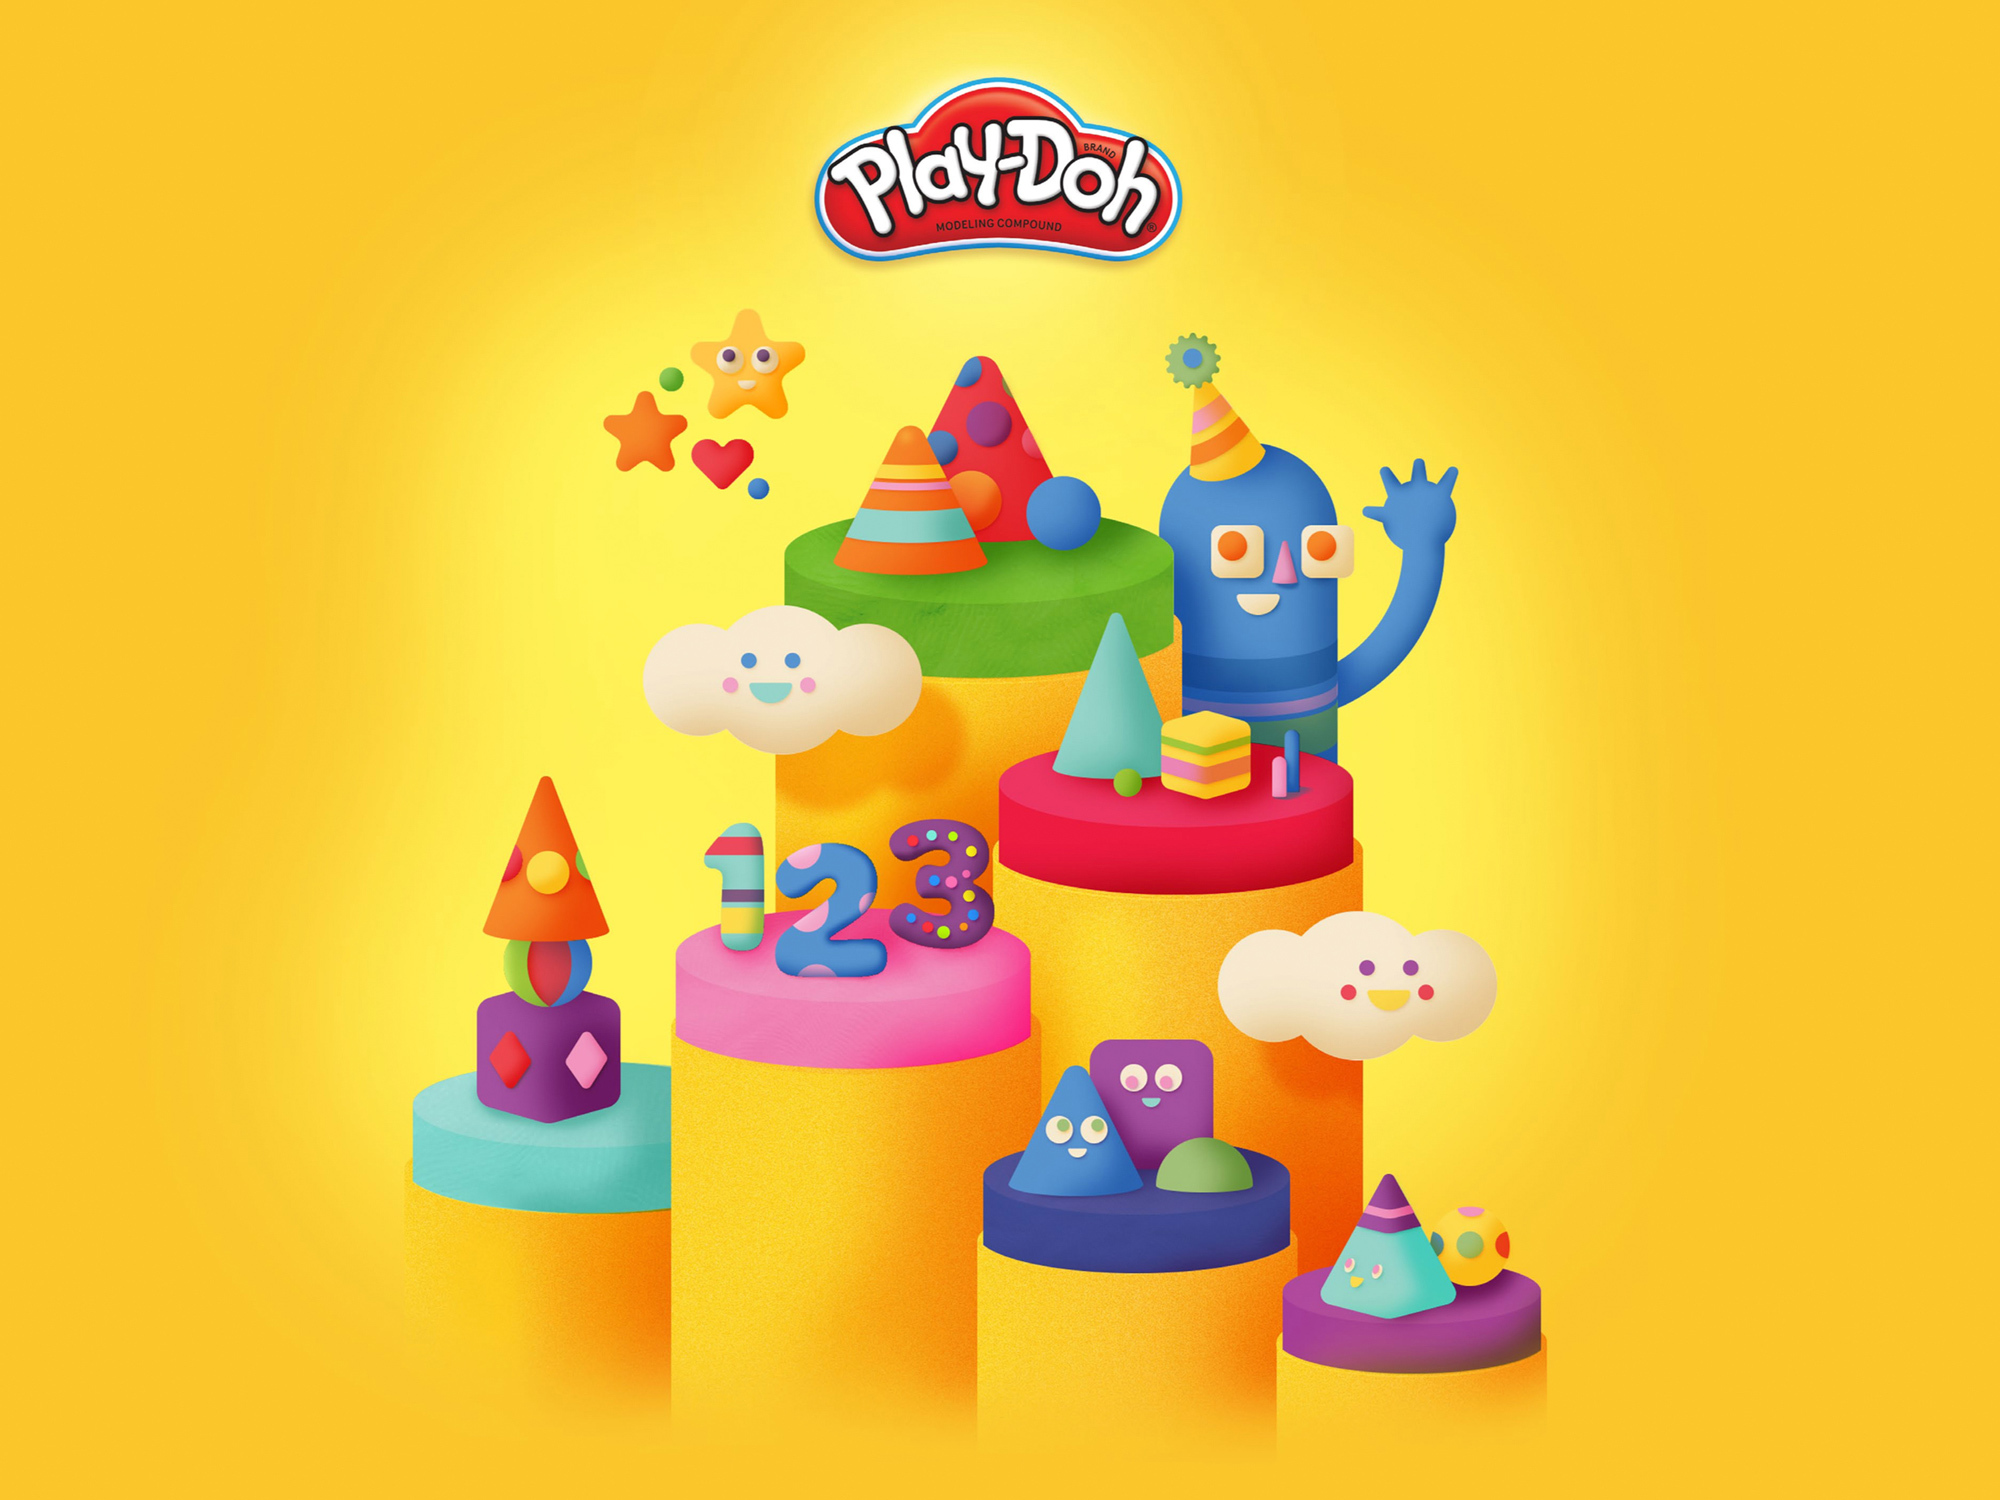 Play doh mattson 01